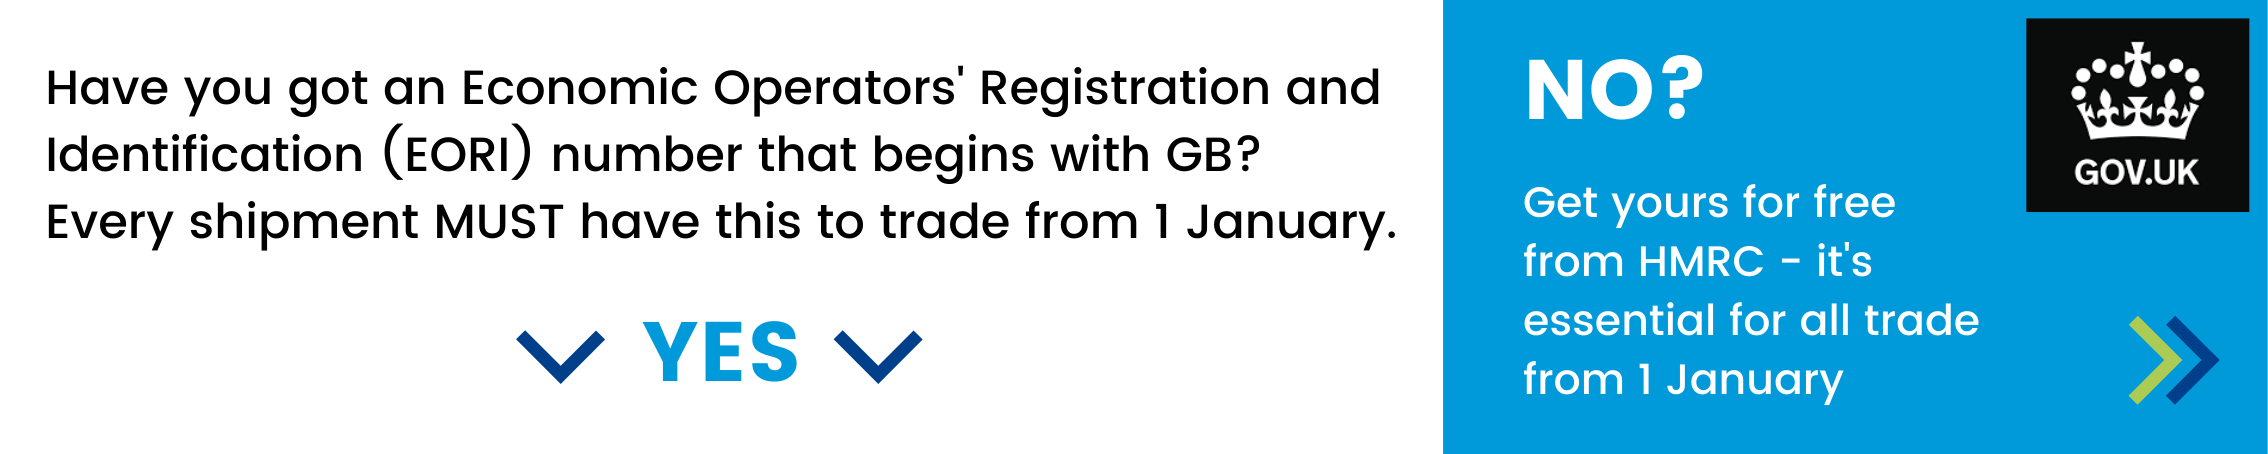 Have you got an Economic Operators' Registration and Identification (EORI) number than begins with GB? Every shipment must have this to trade from 1 January. If not - get yours for free from HMRC by clicking here.